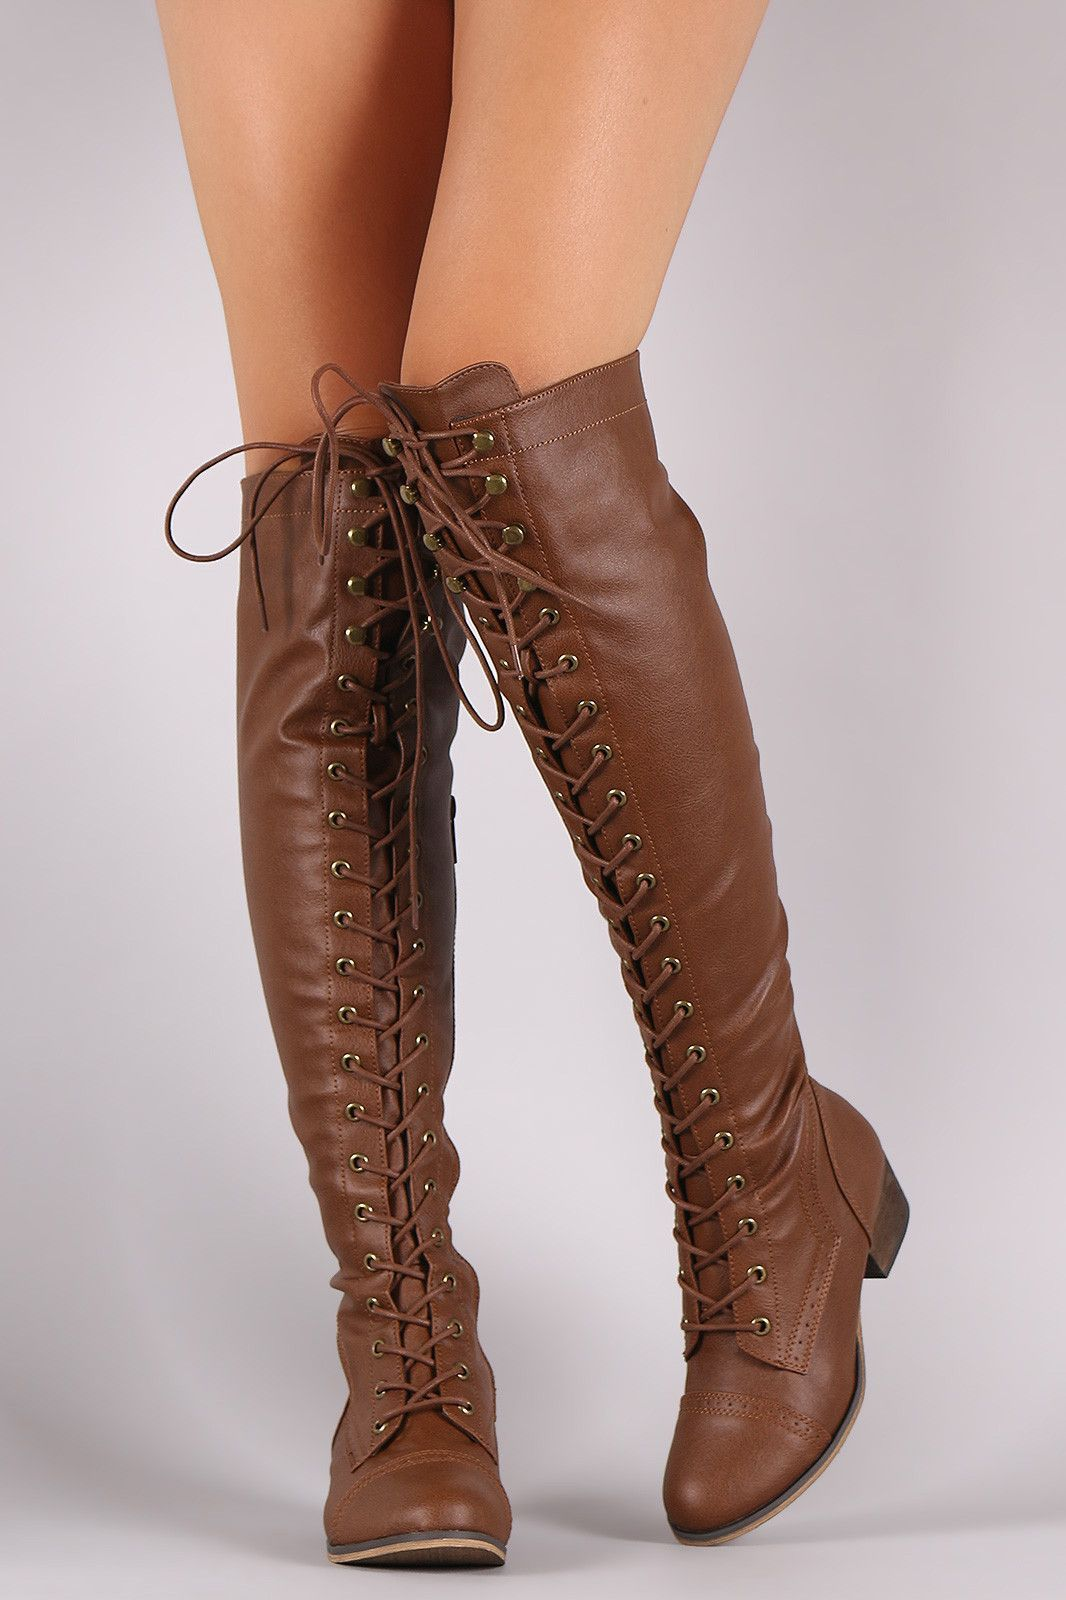 Breckelle Combat Lace Up Over The Knee Boots Knee Boots Boots Over The Knee Boots